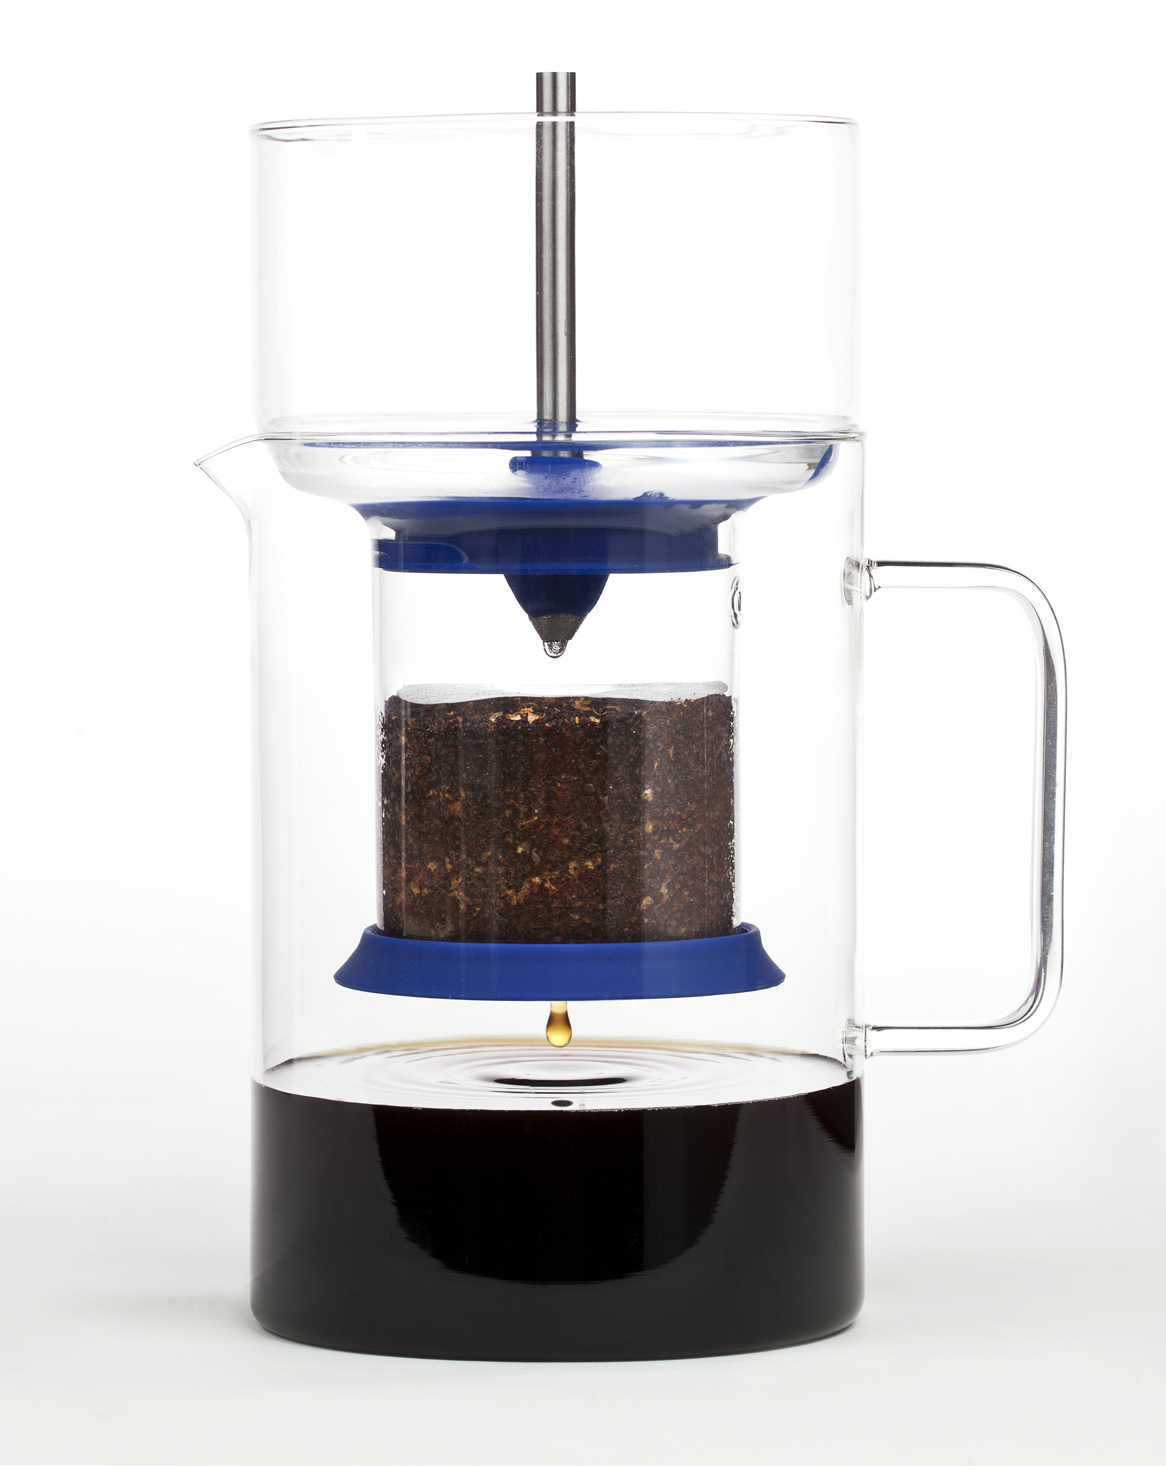 The Minimalist New Cold Bruer – Dear Coffee, I Love You.